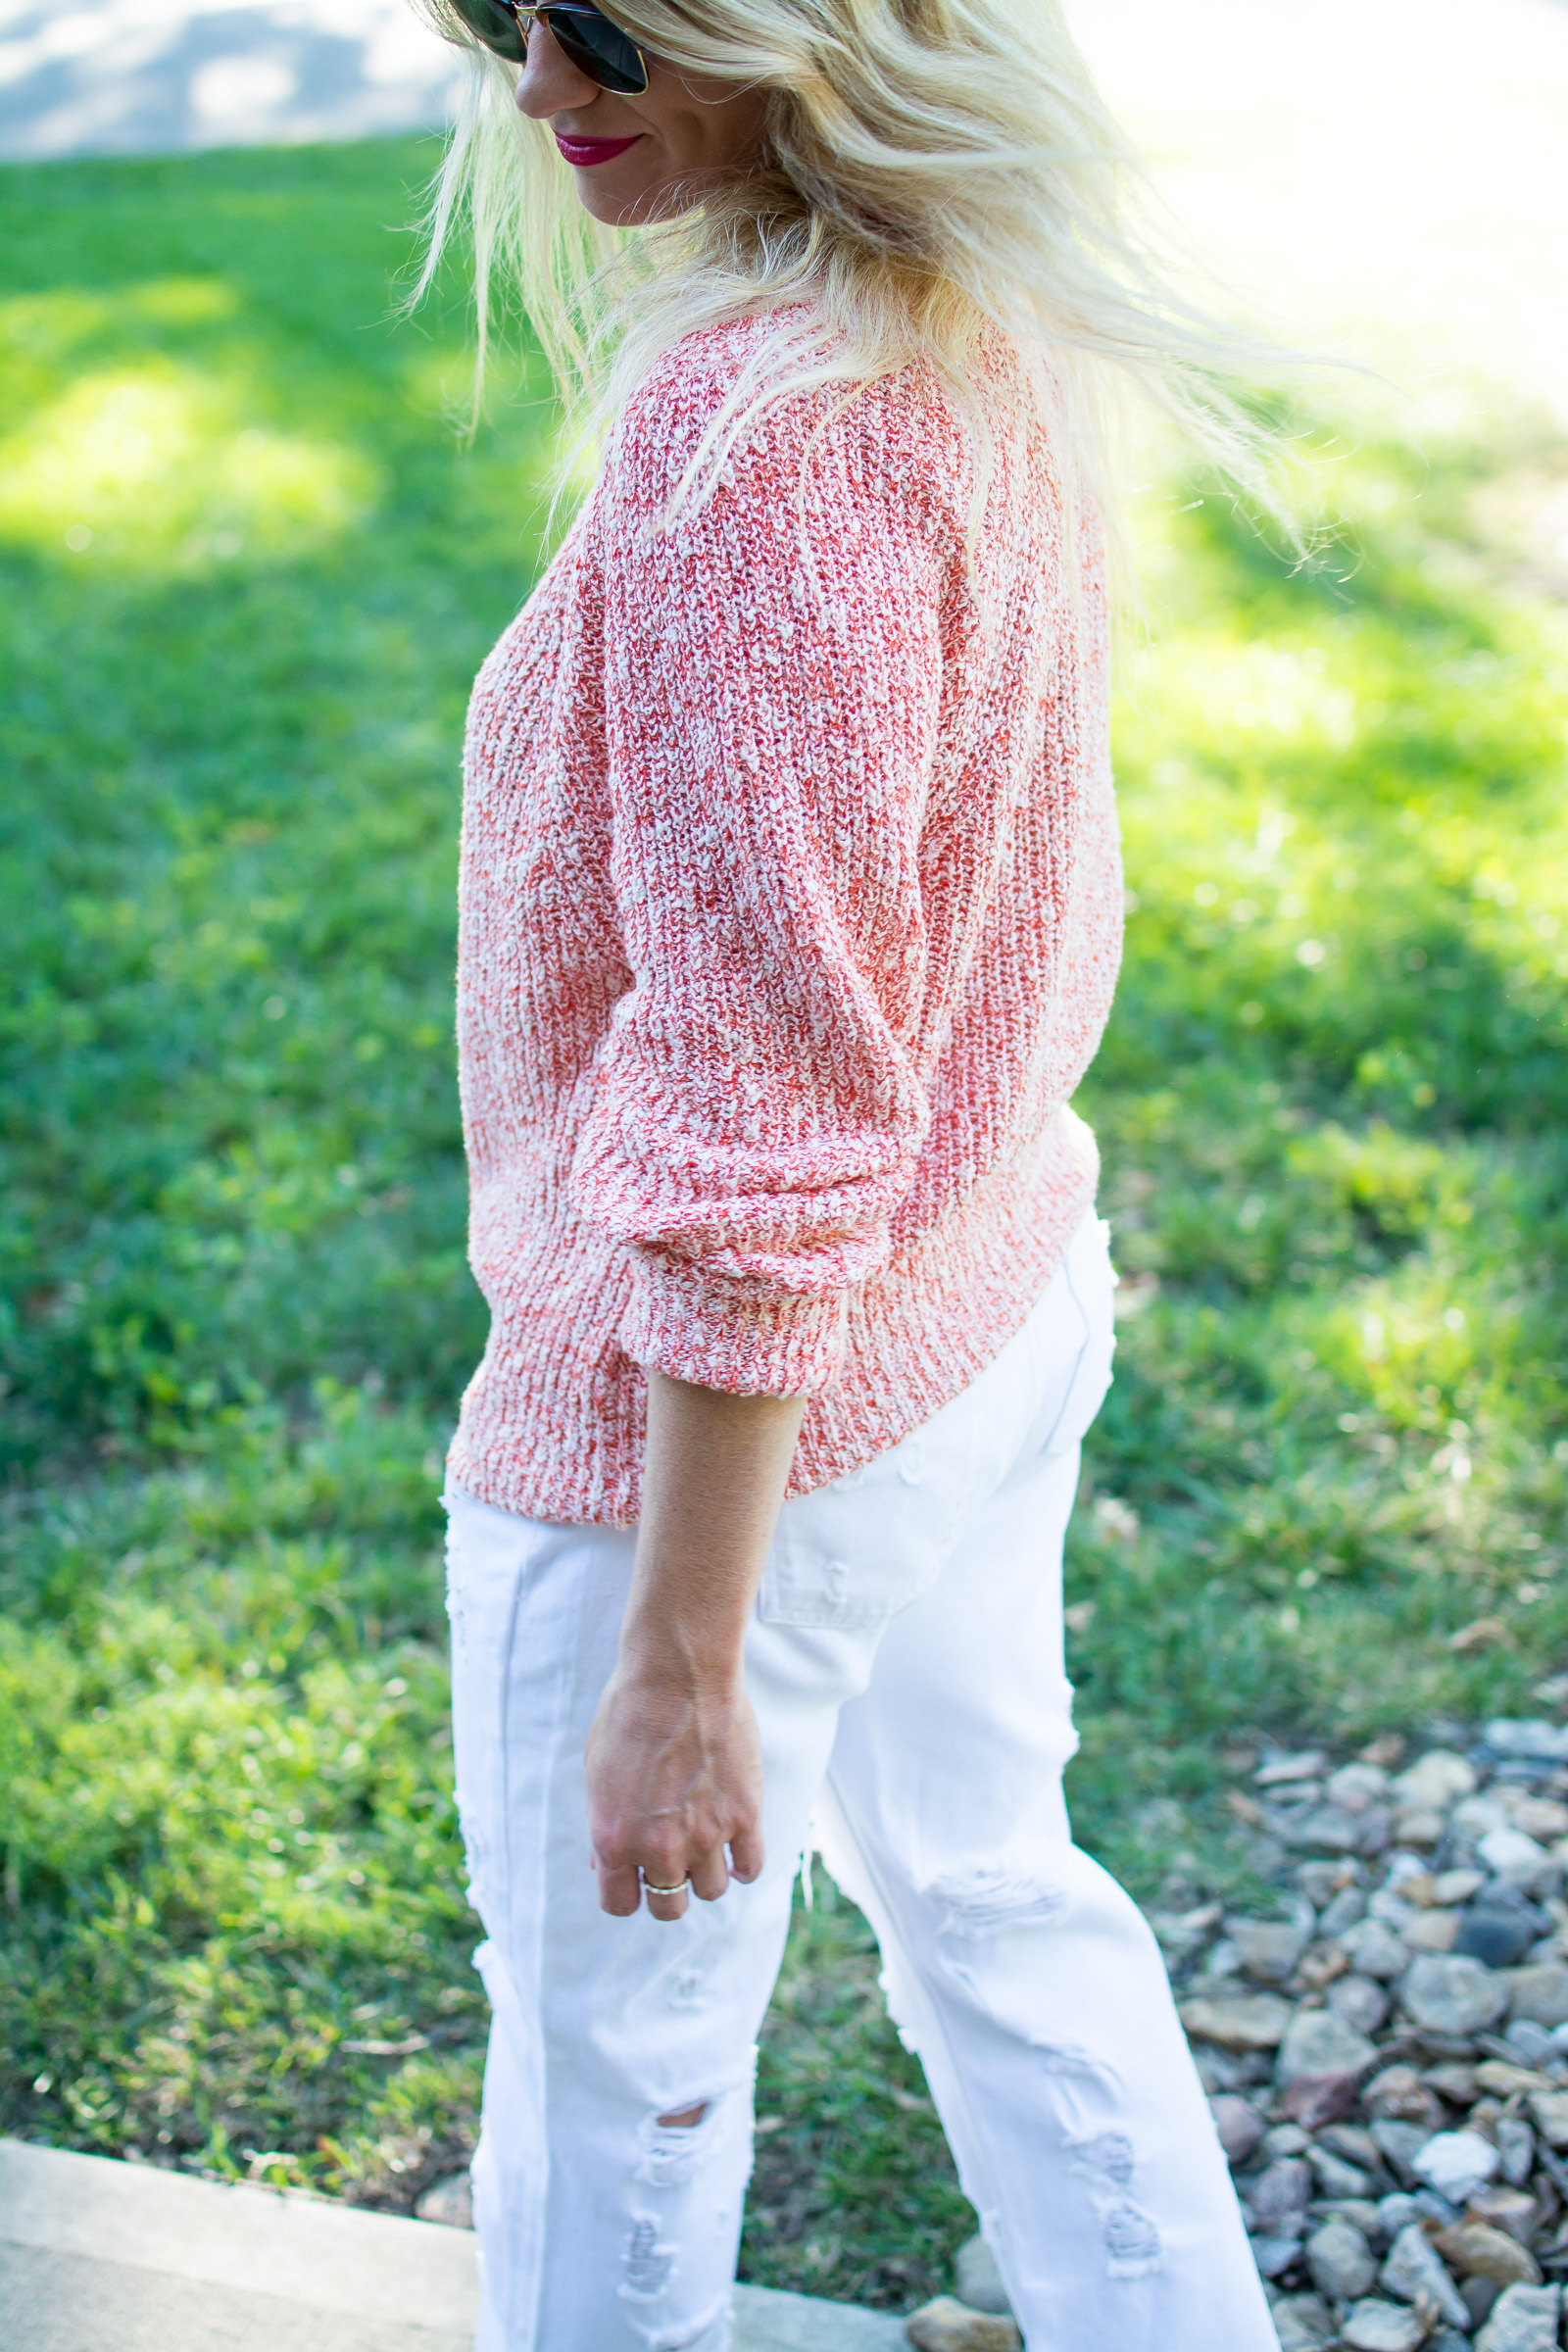 Summer Sweater with White Boyfriend Denim. | Ashley from Le Stylo Rouge